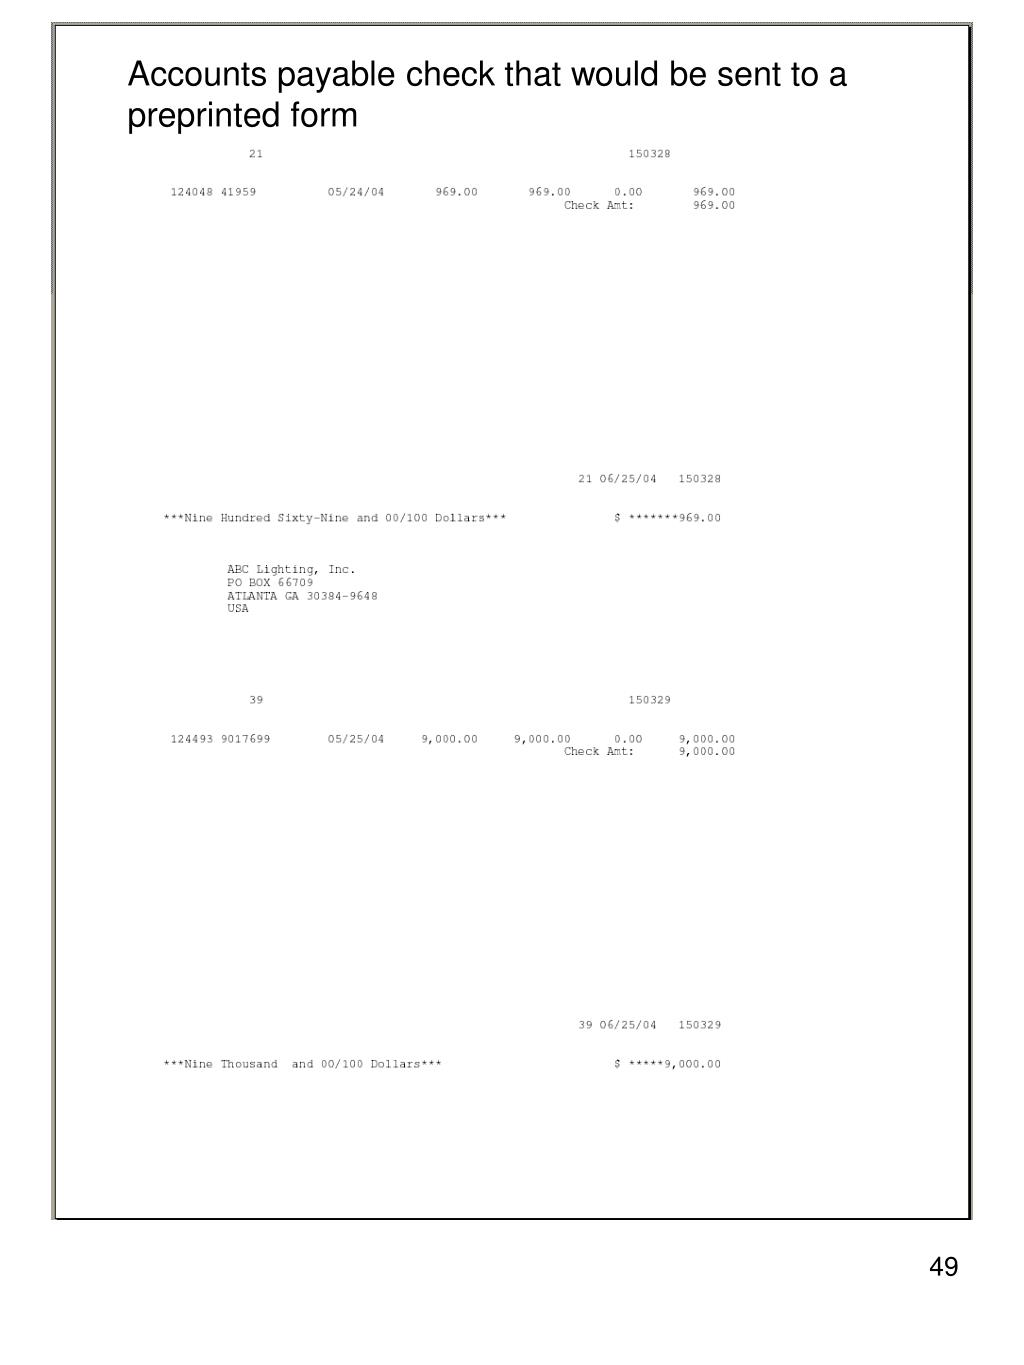 Accounts payable check that would be sent to a preprinted form